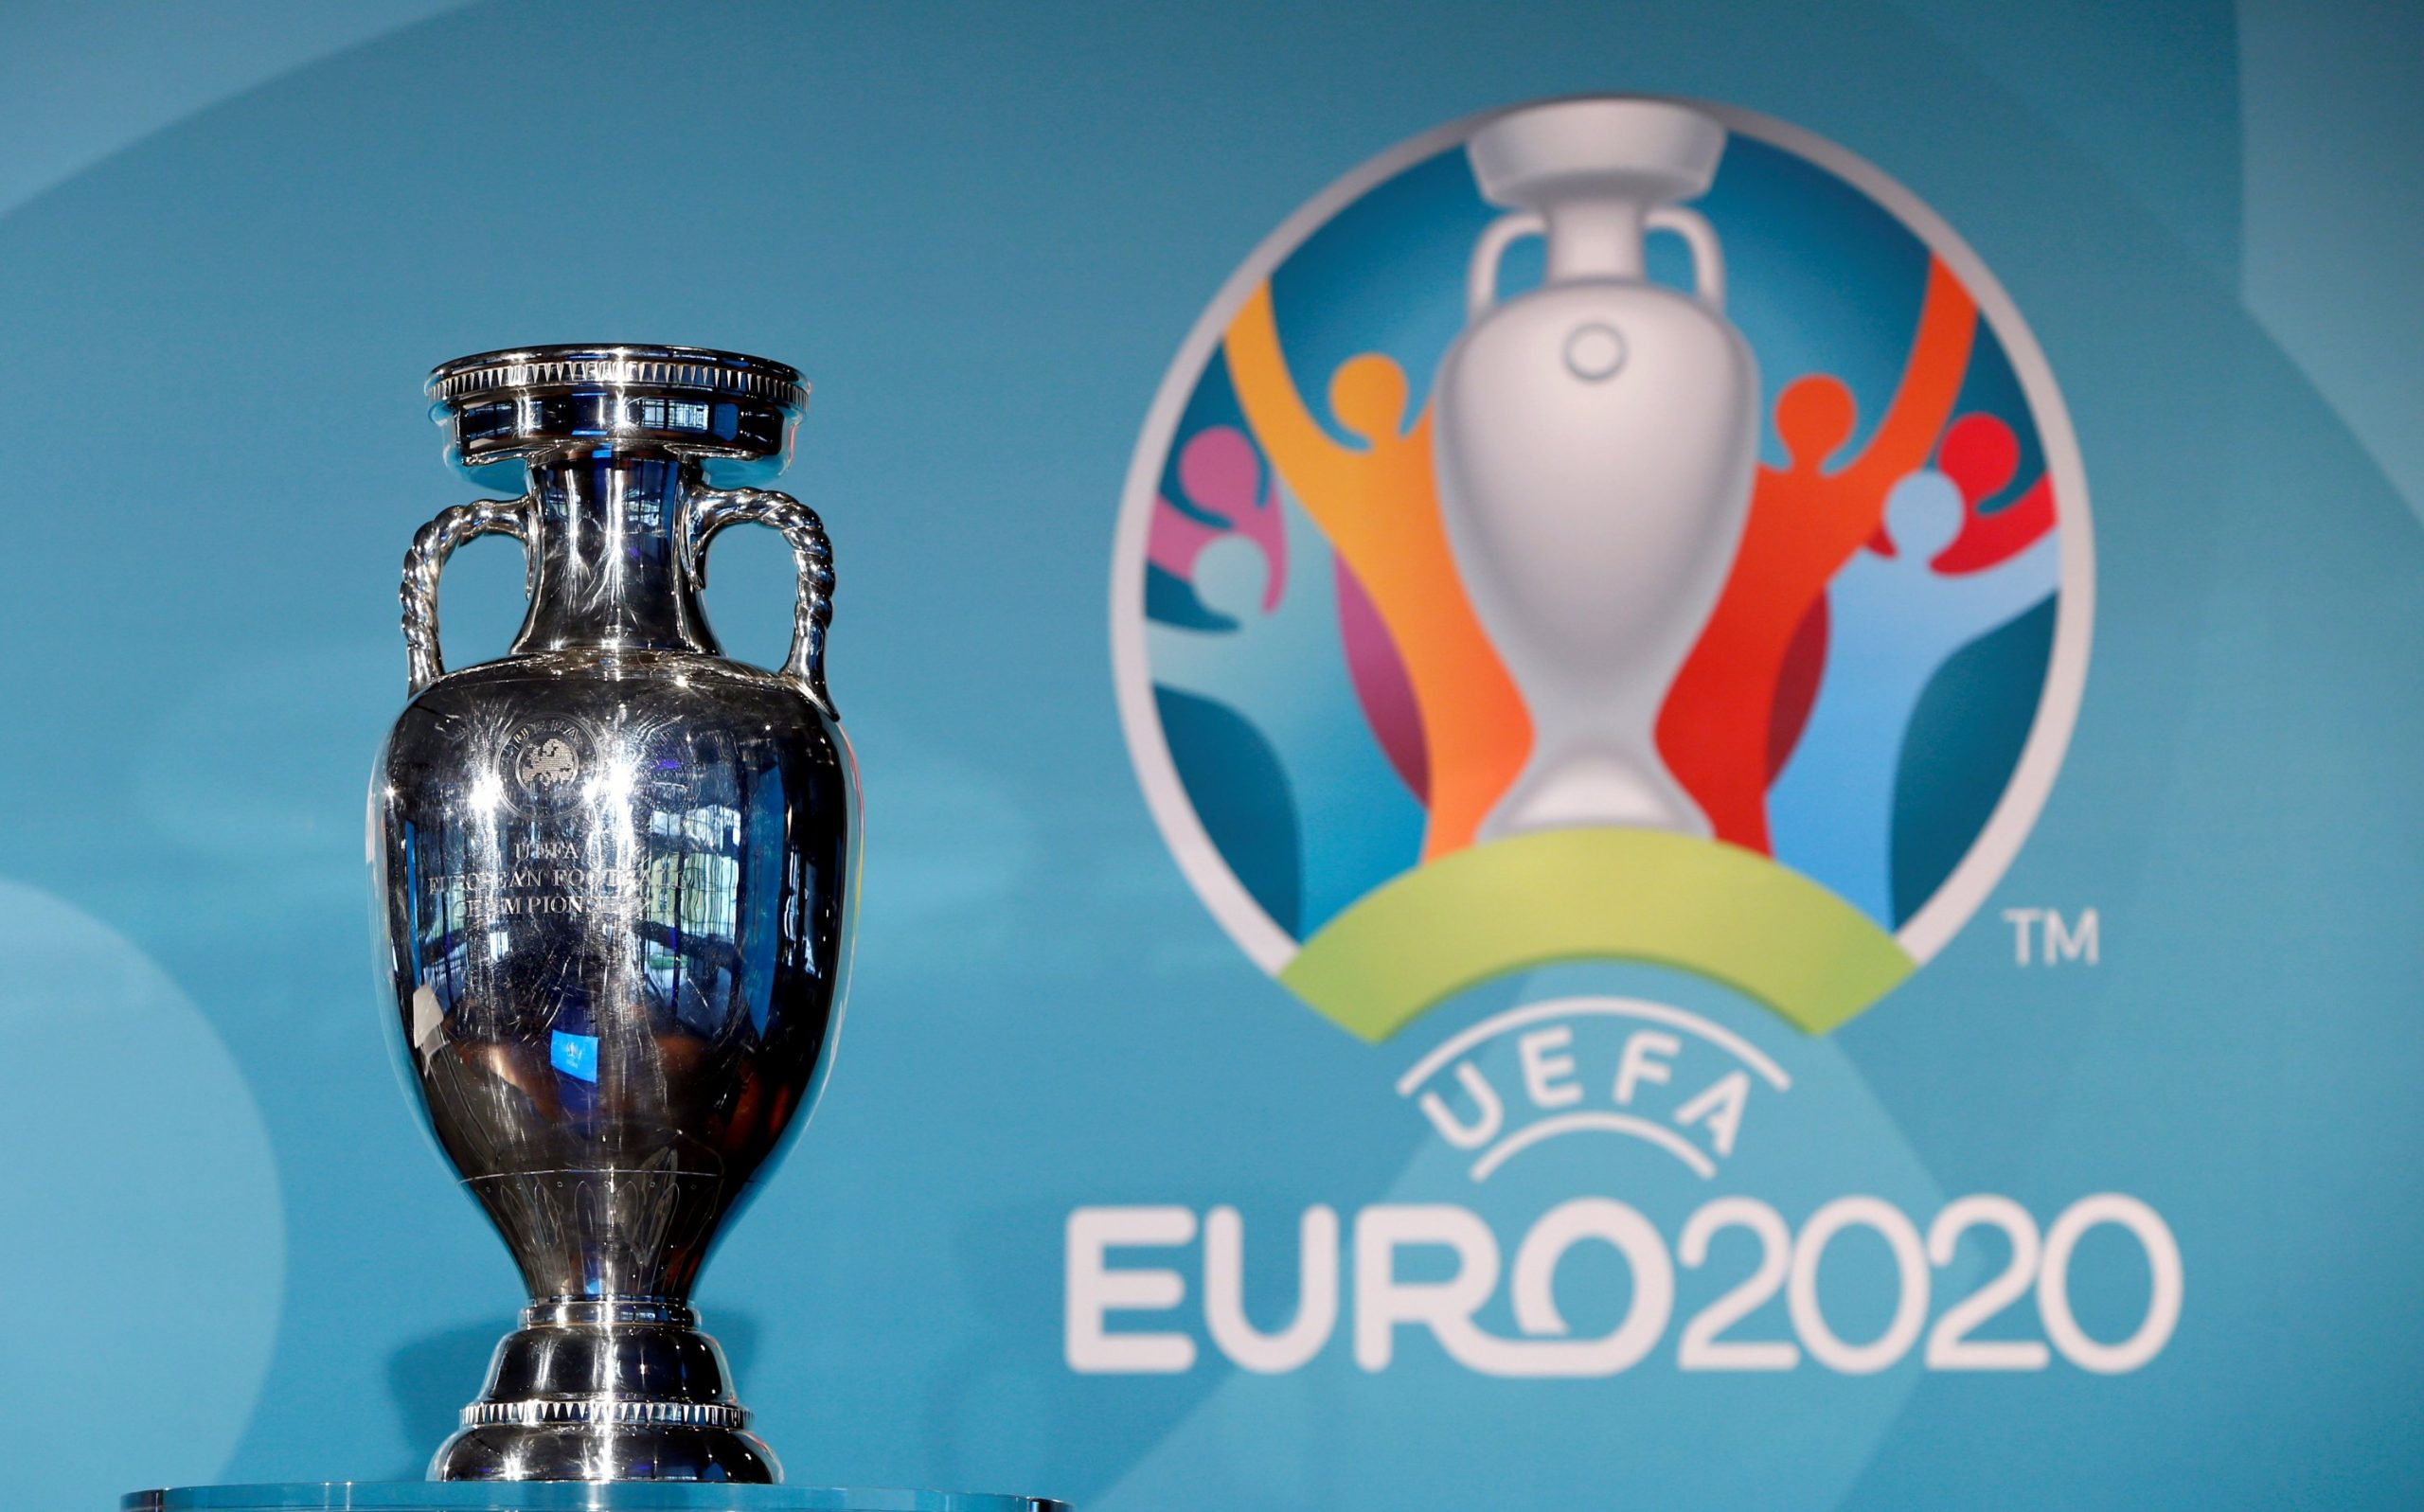 UEFA has announced the prize money for the Euro 2020 champions.